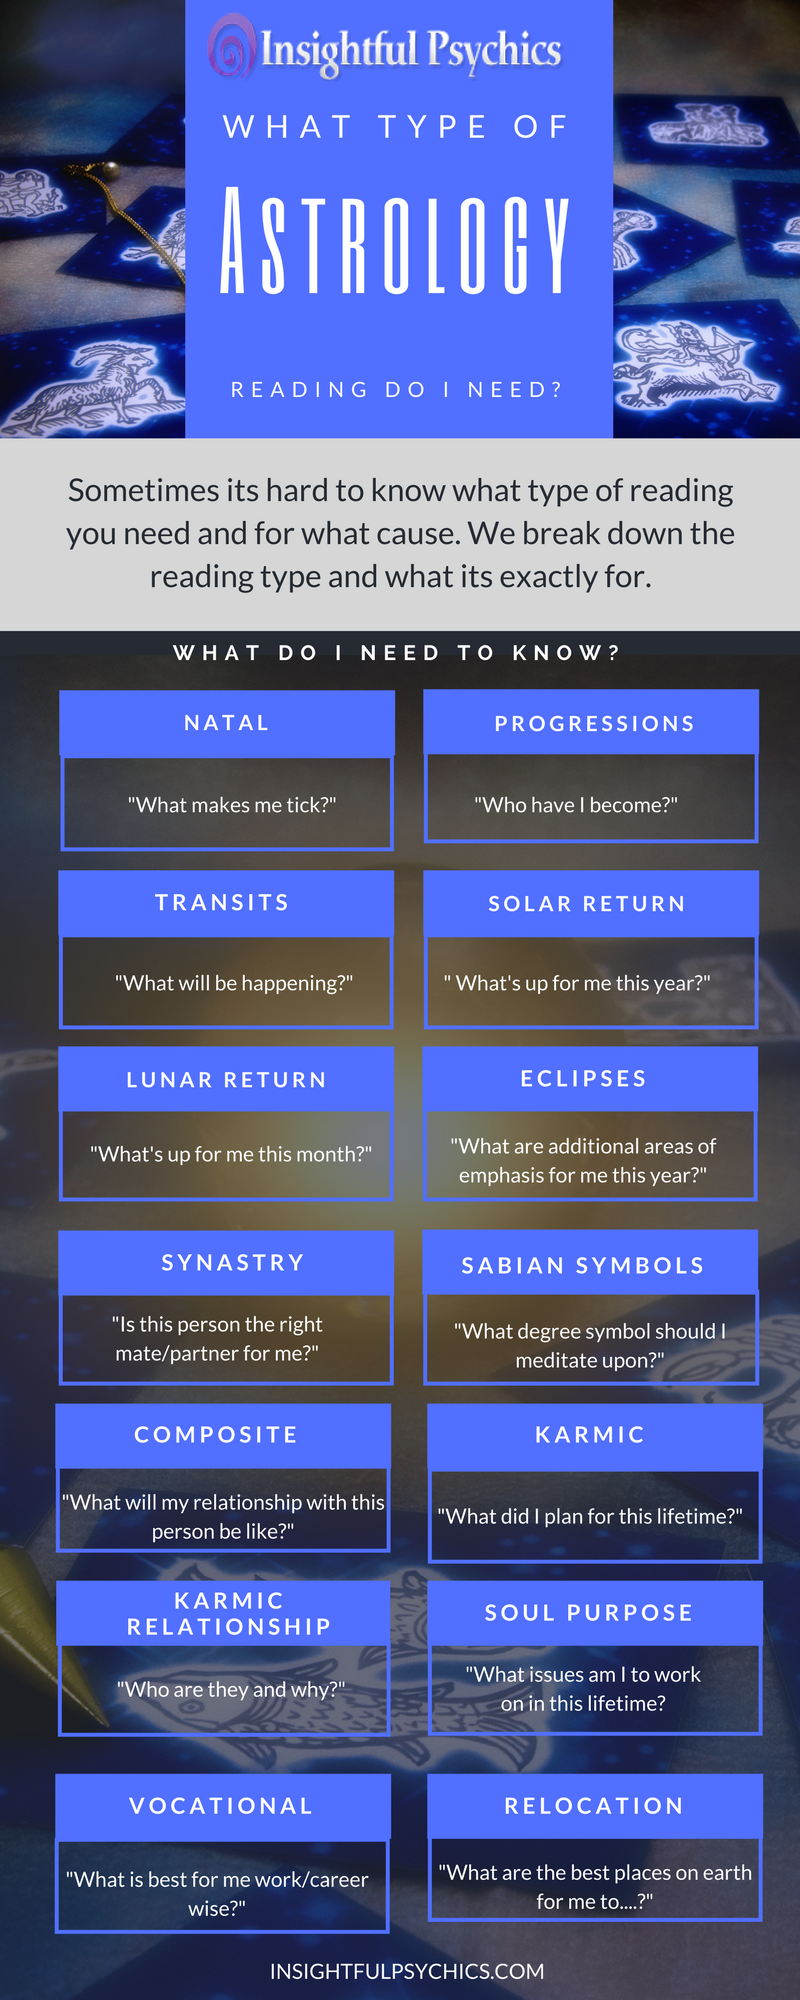 What type of astrology reading should I get?  #astrology #astrologyreadings #infographic#astrologyreading